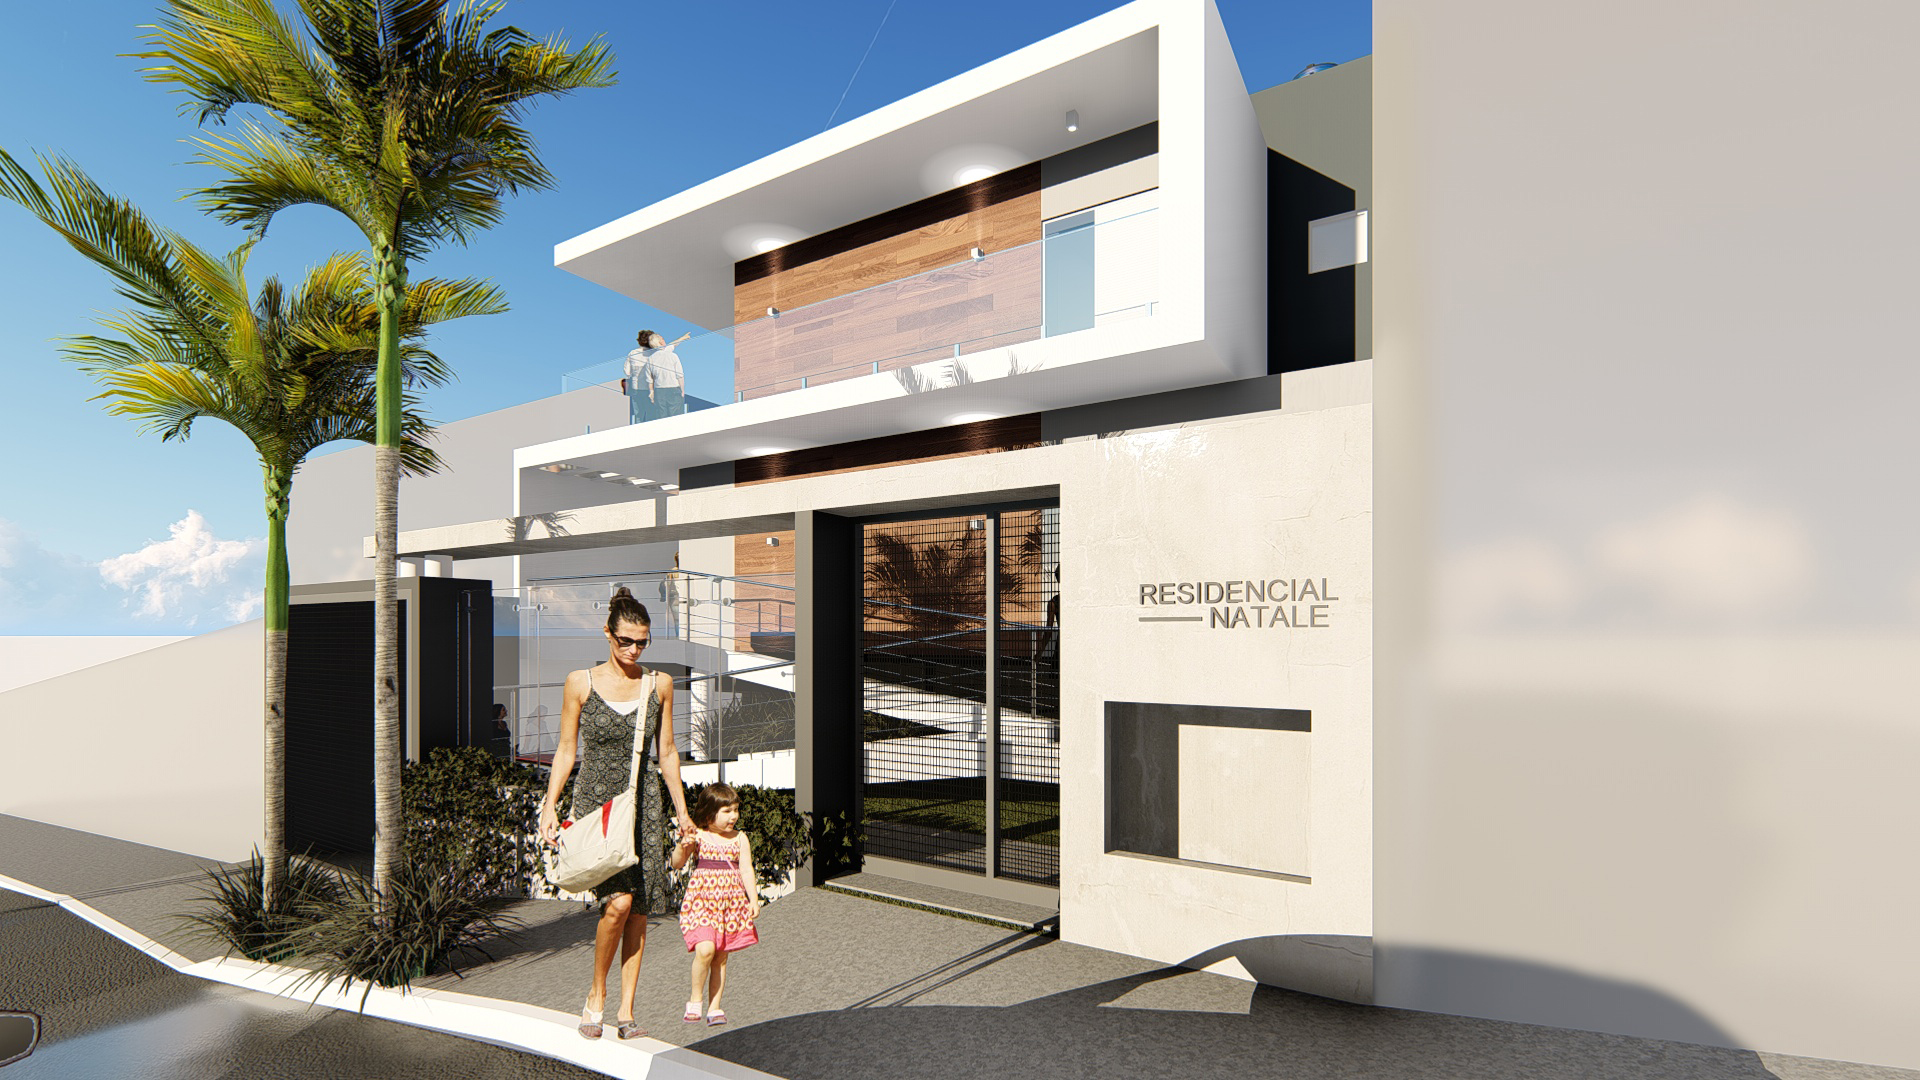 Residencial Natale